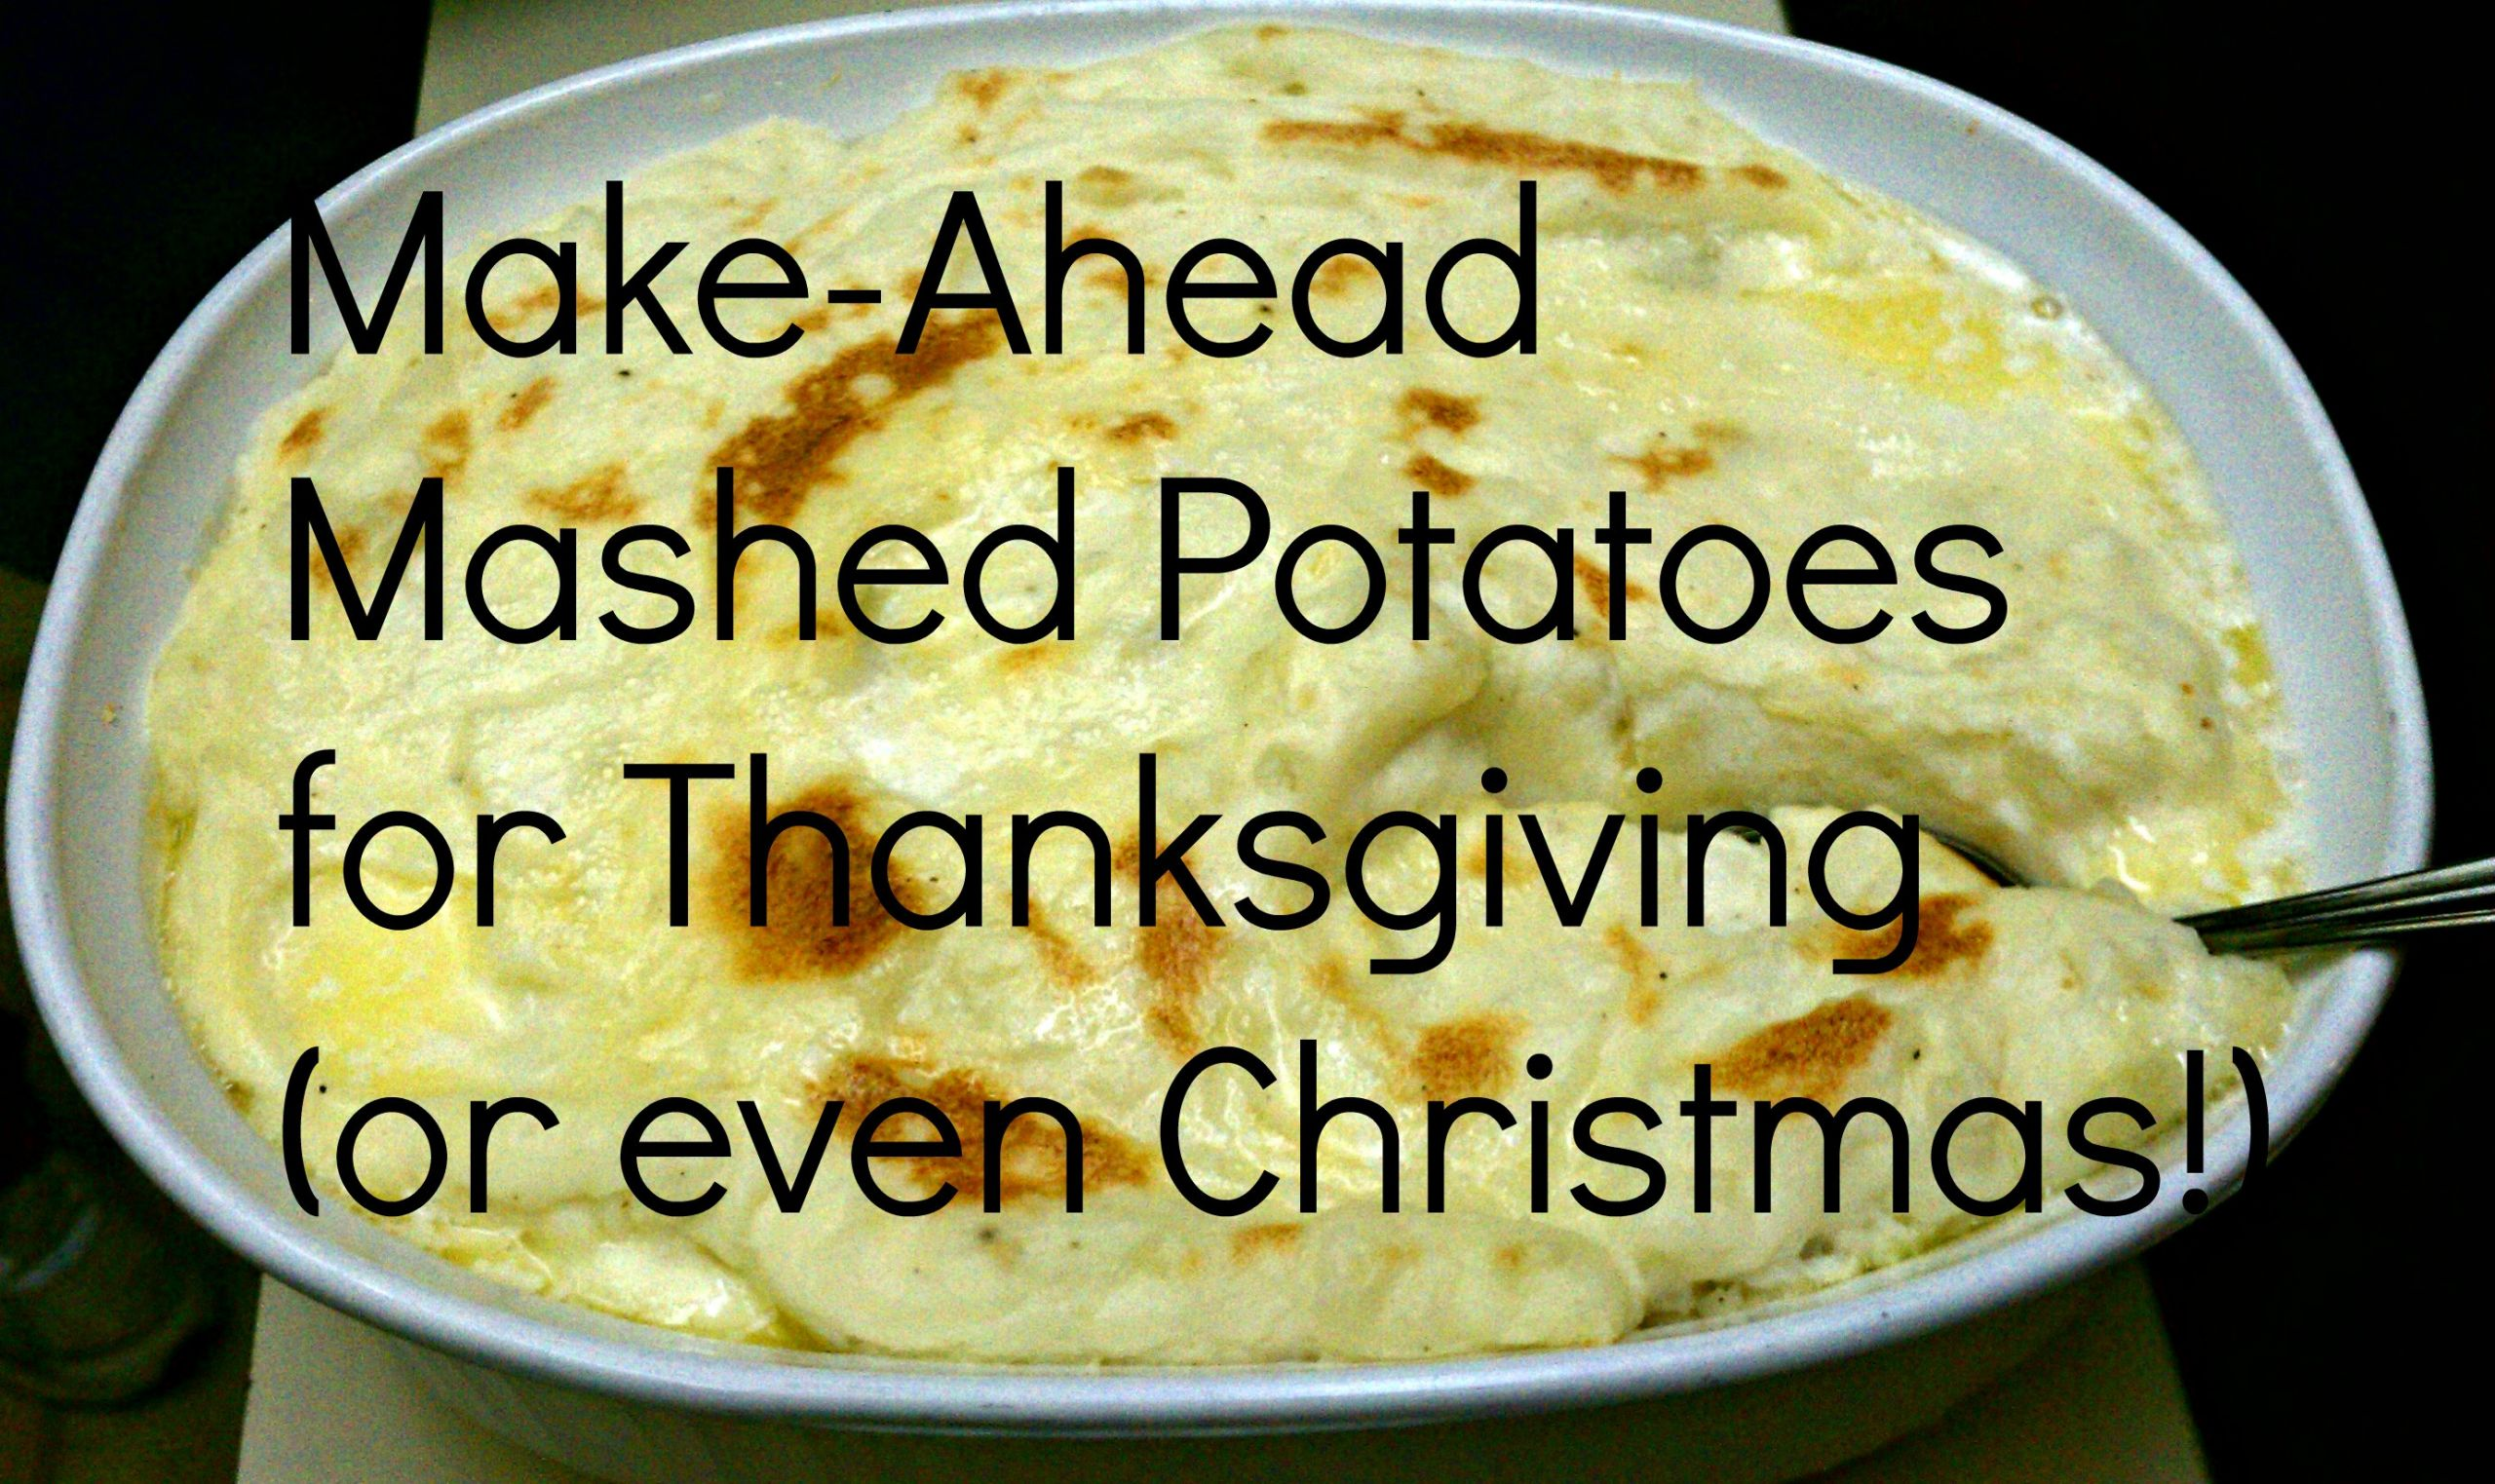 Make Ahead Mashed Potatoes Freezer  How To Freeze Mashed Potatoes Now For Thanksgiving